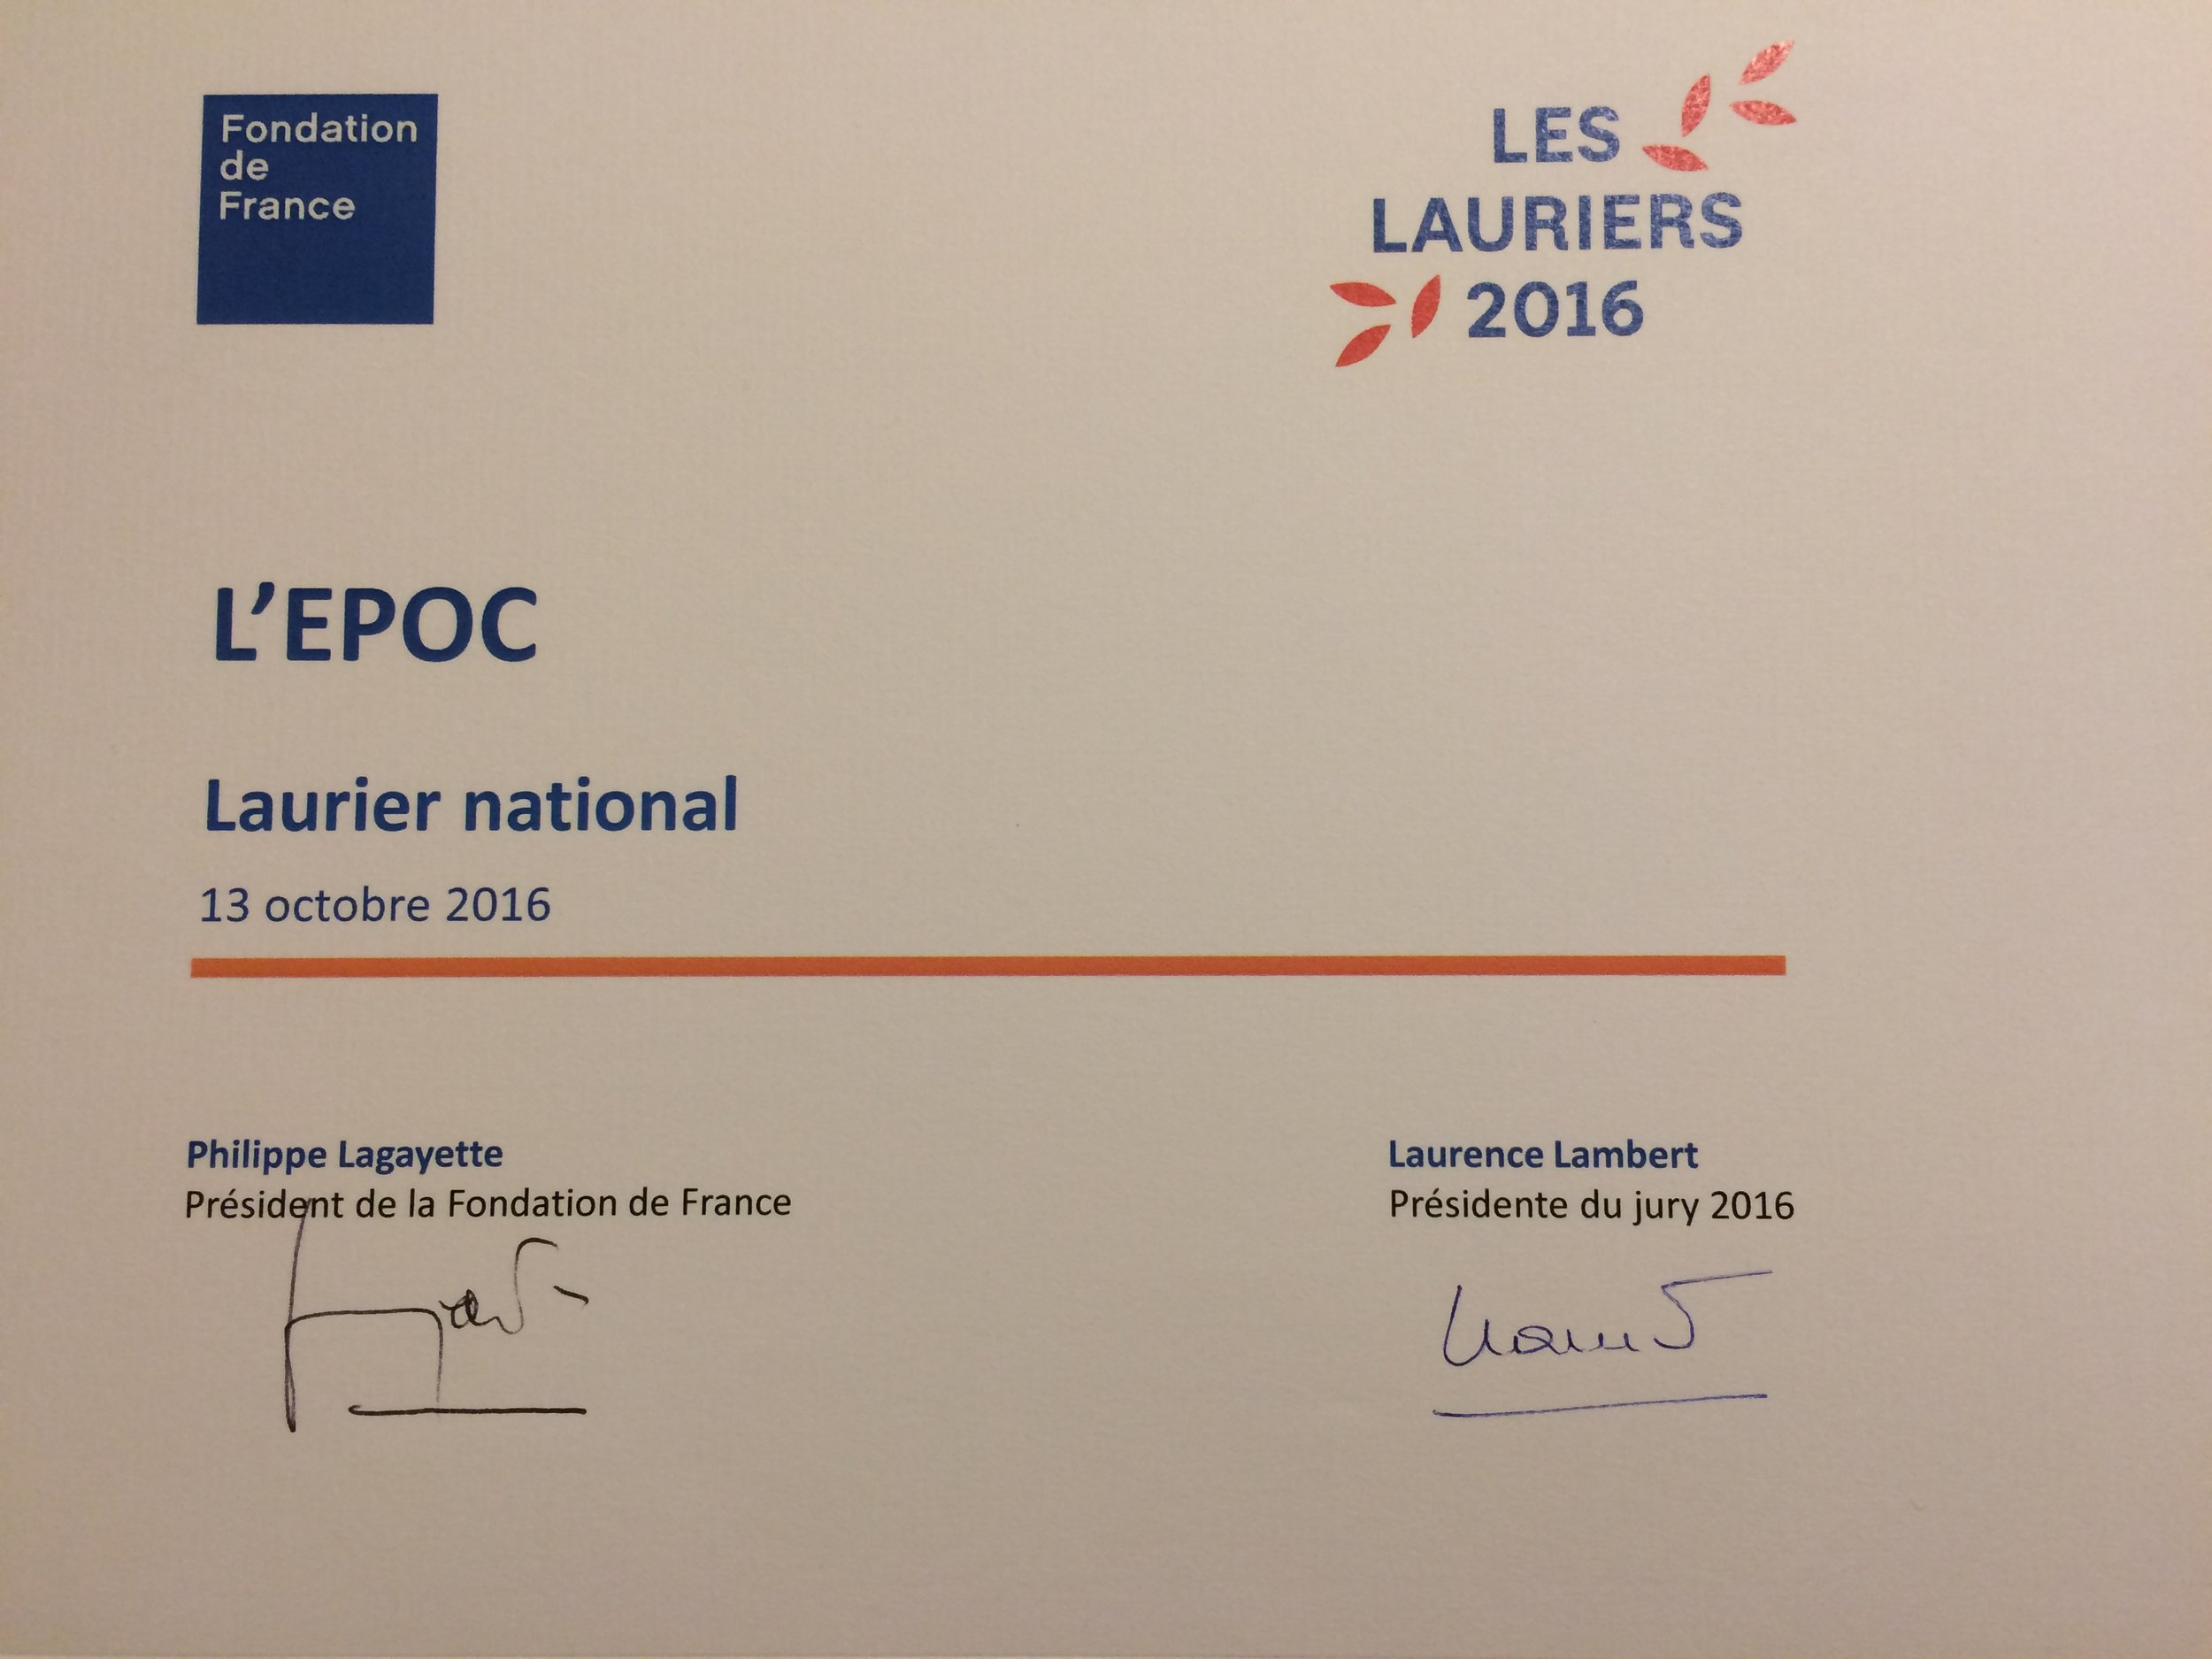 lauriers_octobre_2016_laureat.JPG